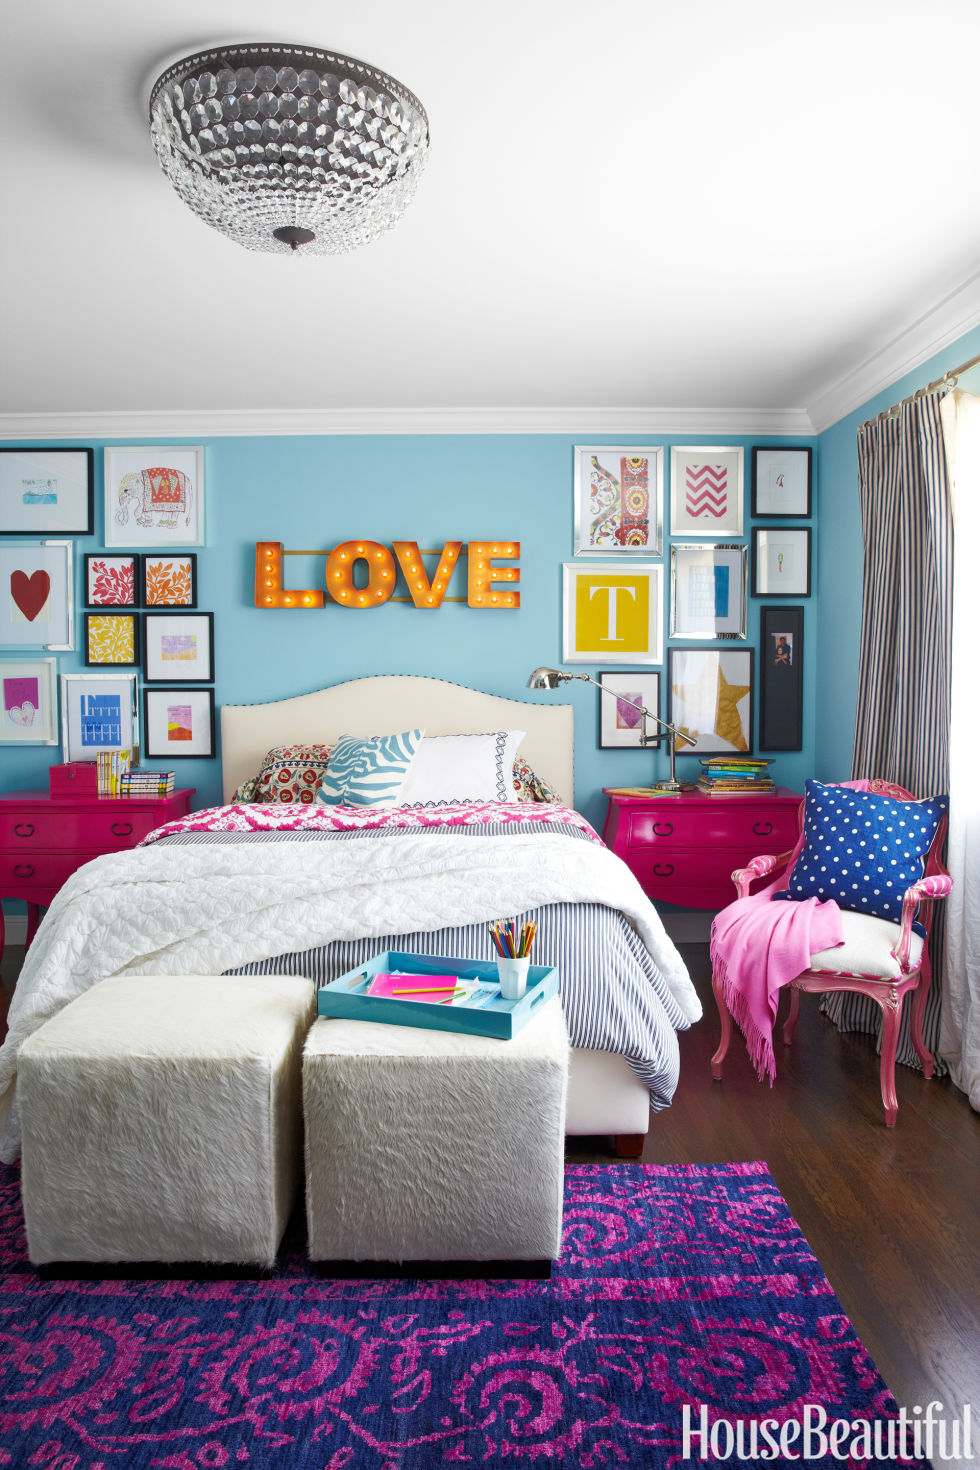 Bedroom wall paint color combinations - Bedroom Wall Paint Color Combinations 10